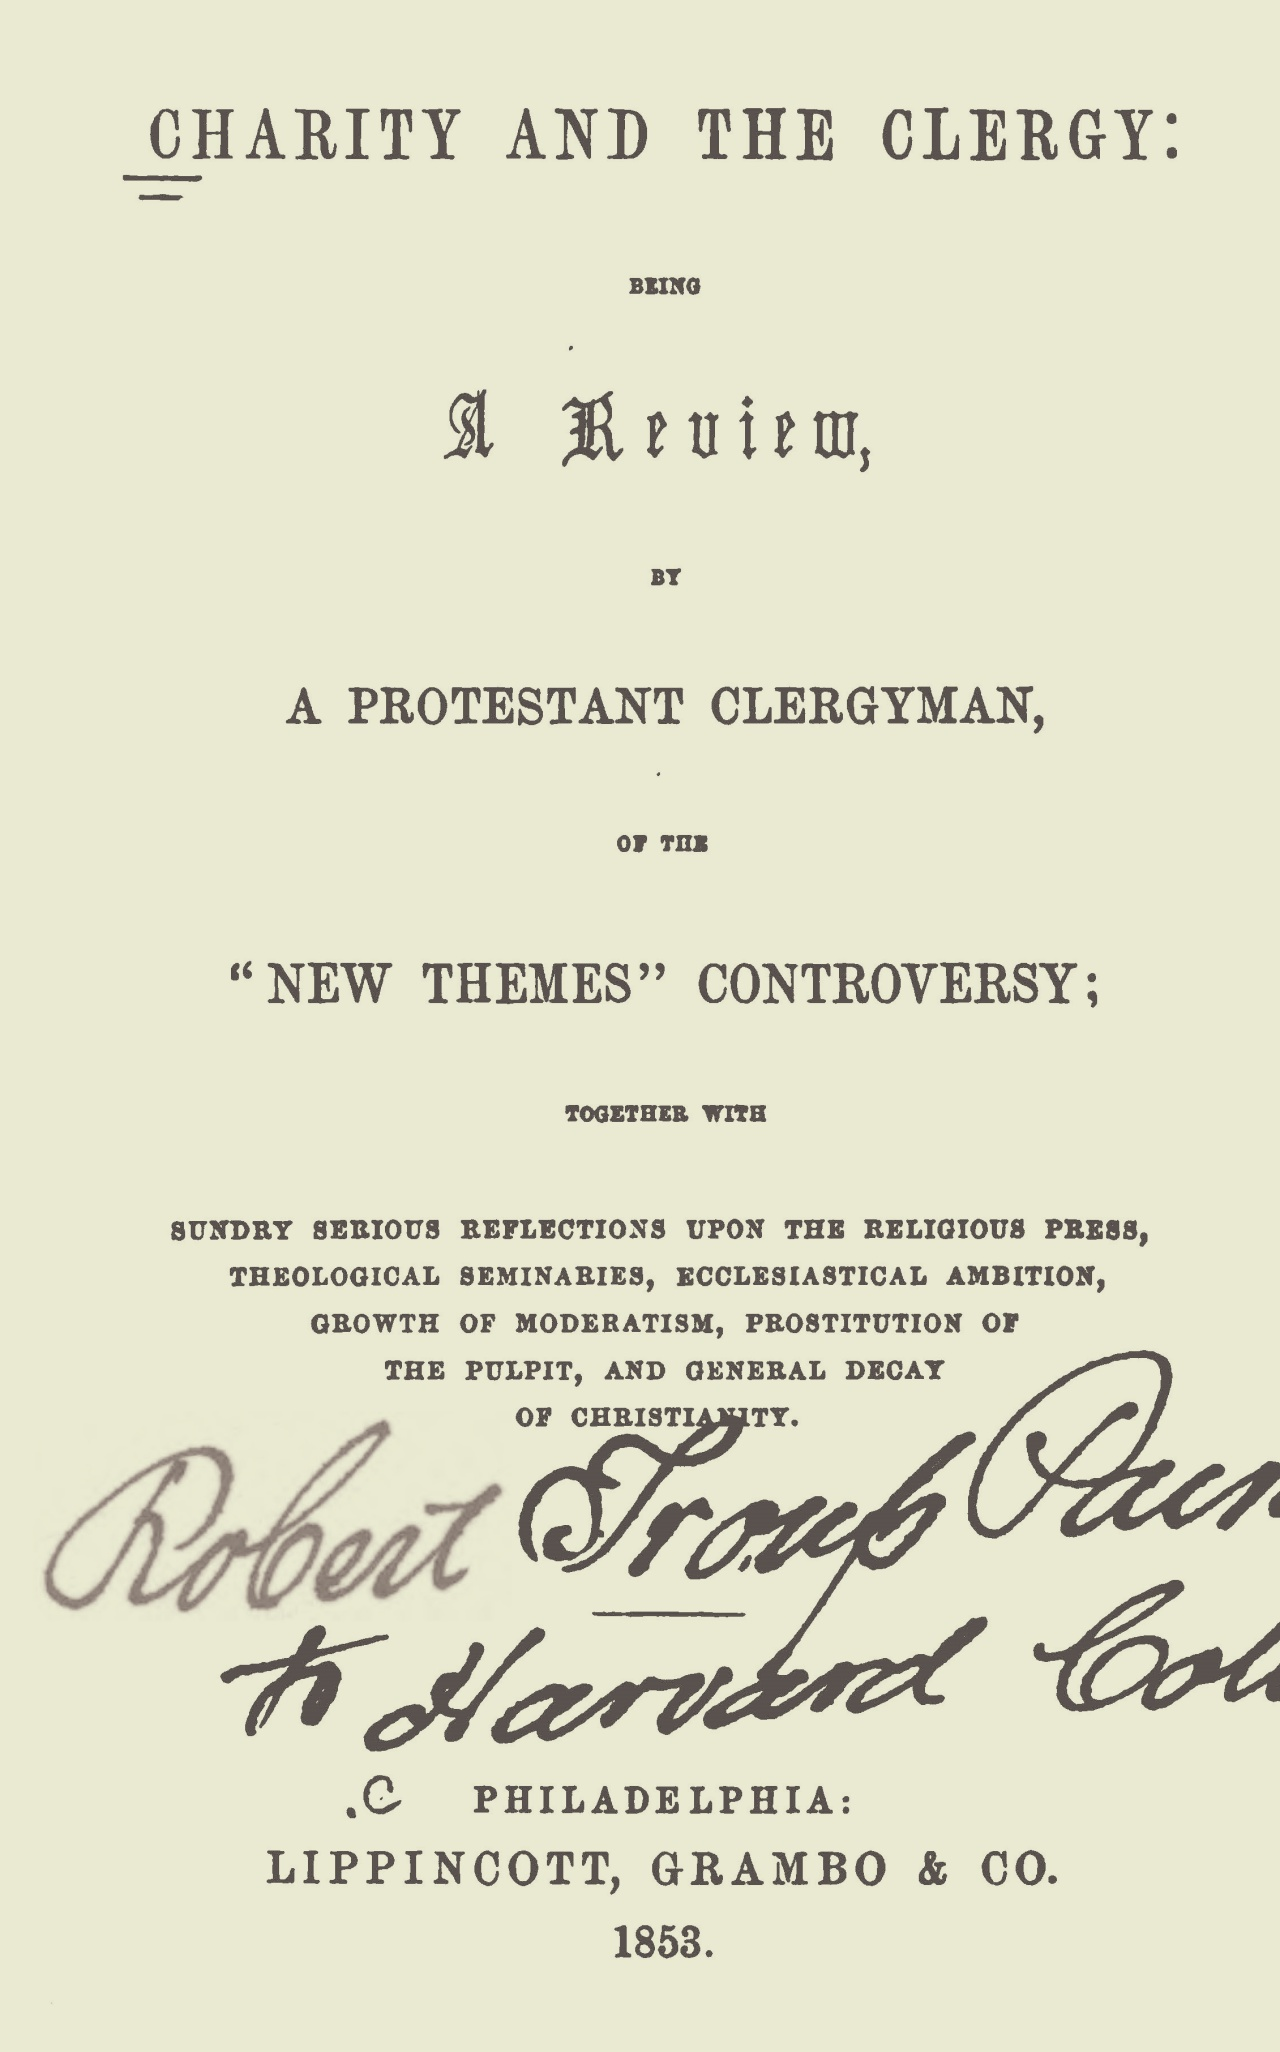 Ruffner, William Henry, Charity and the Clergy Title Page.jpg